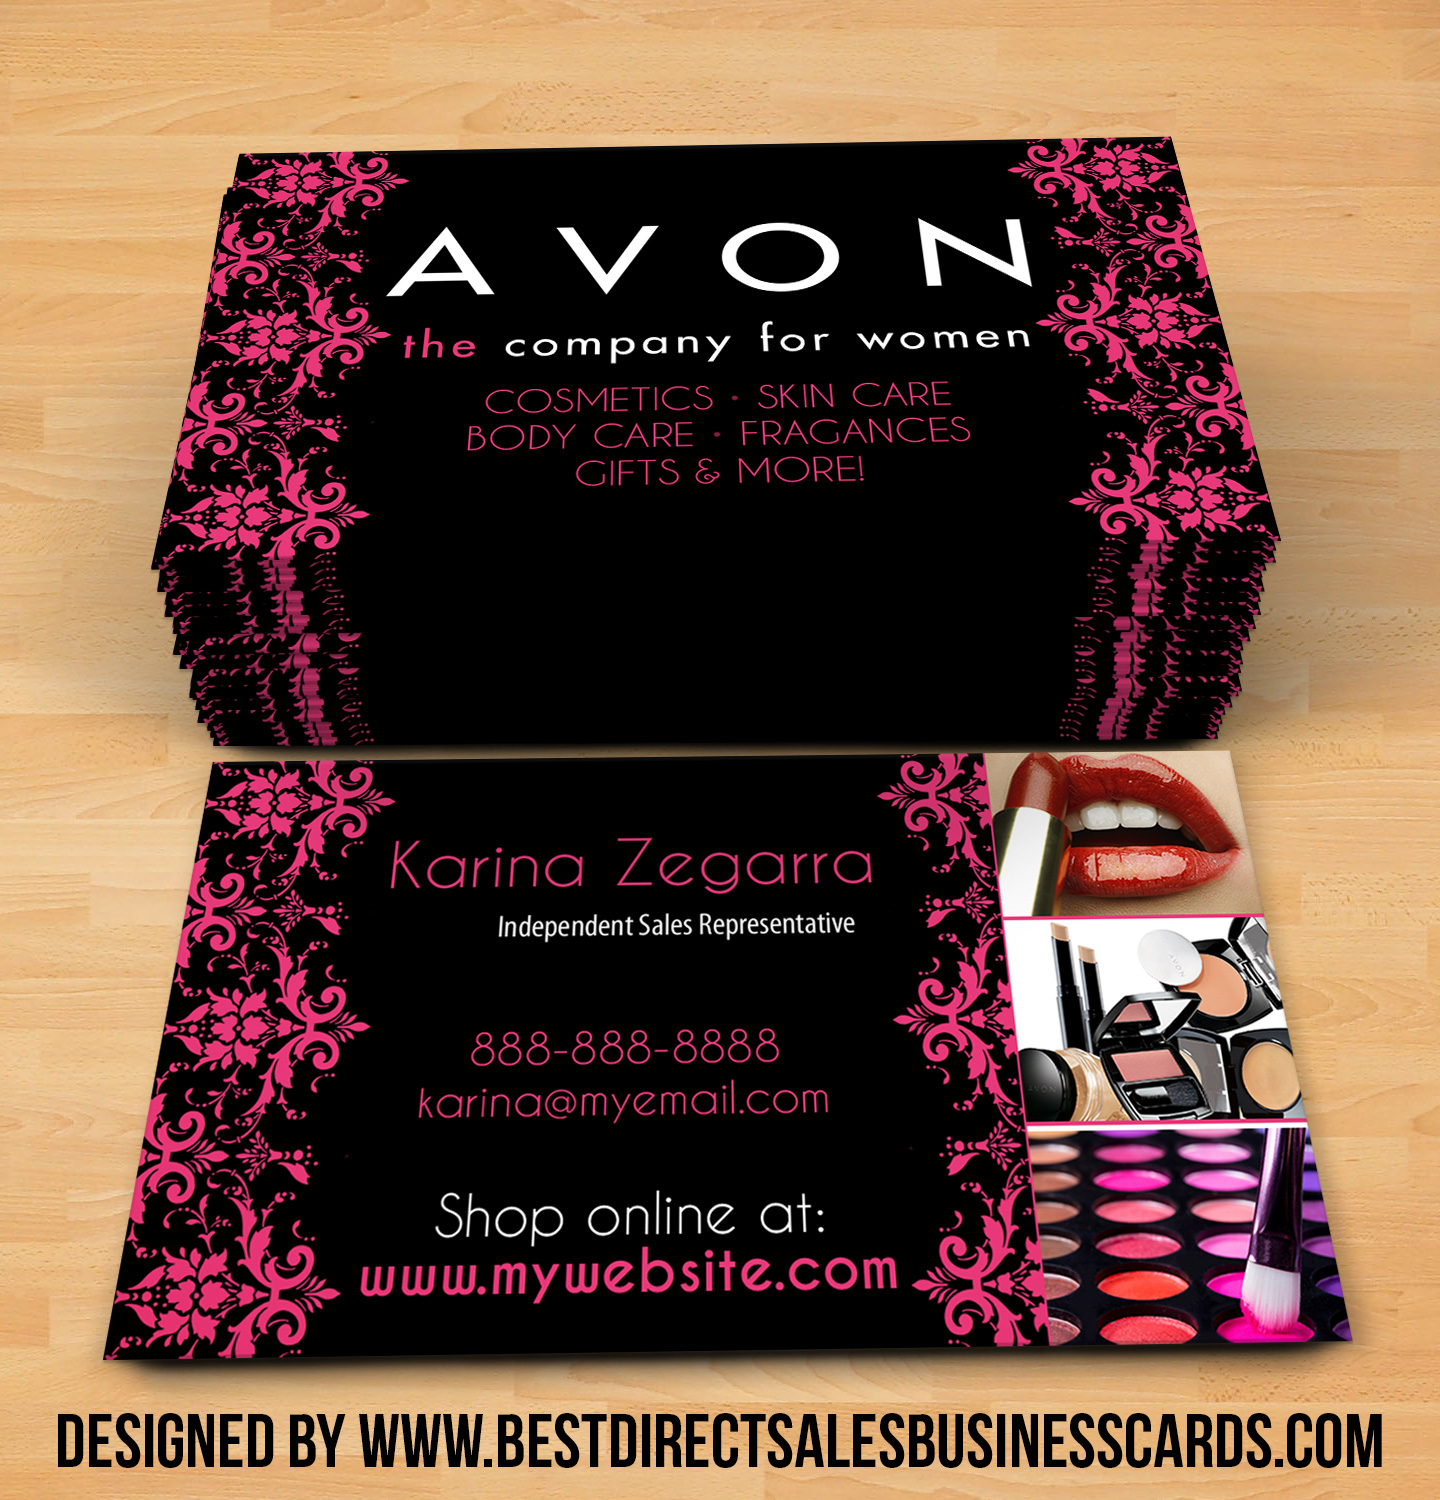 Avon business cards style 5 kz creative services online store avon business cards style 5 colourmoves